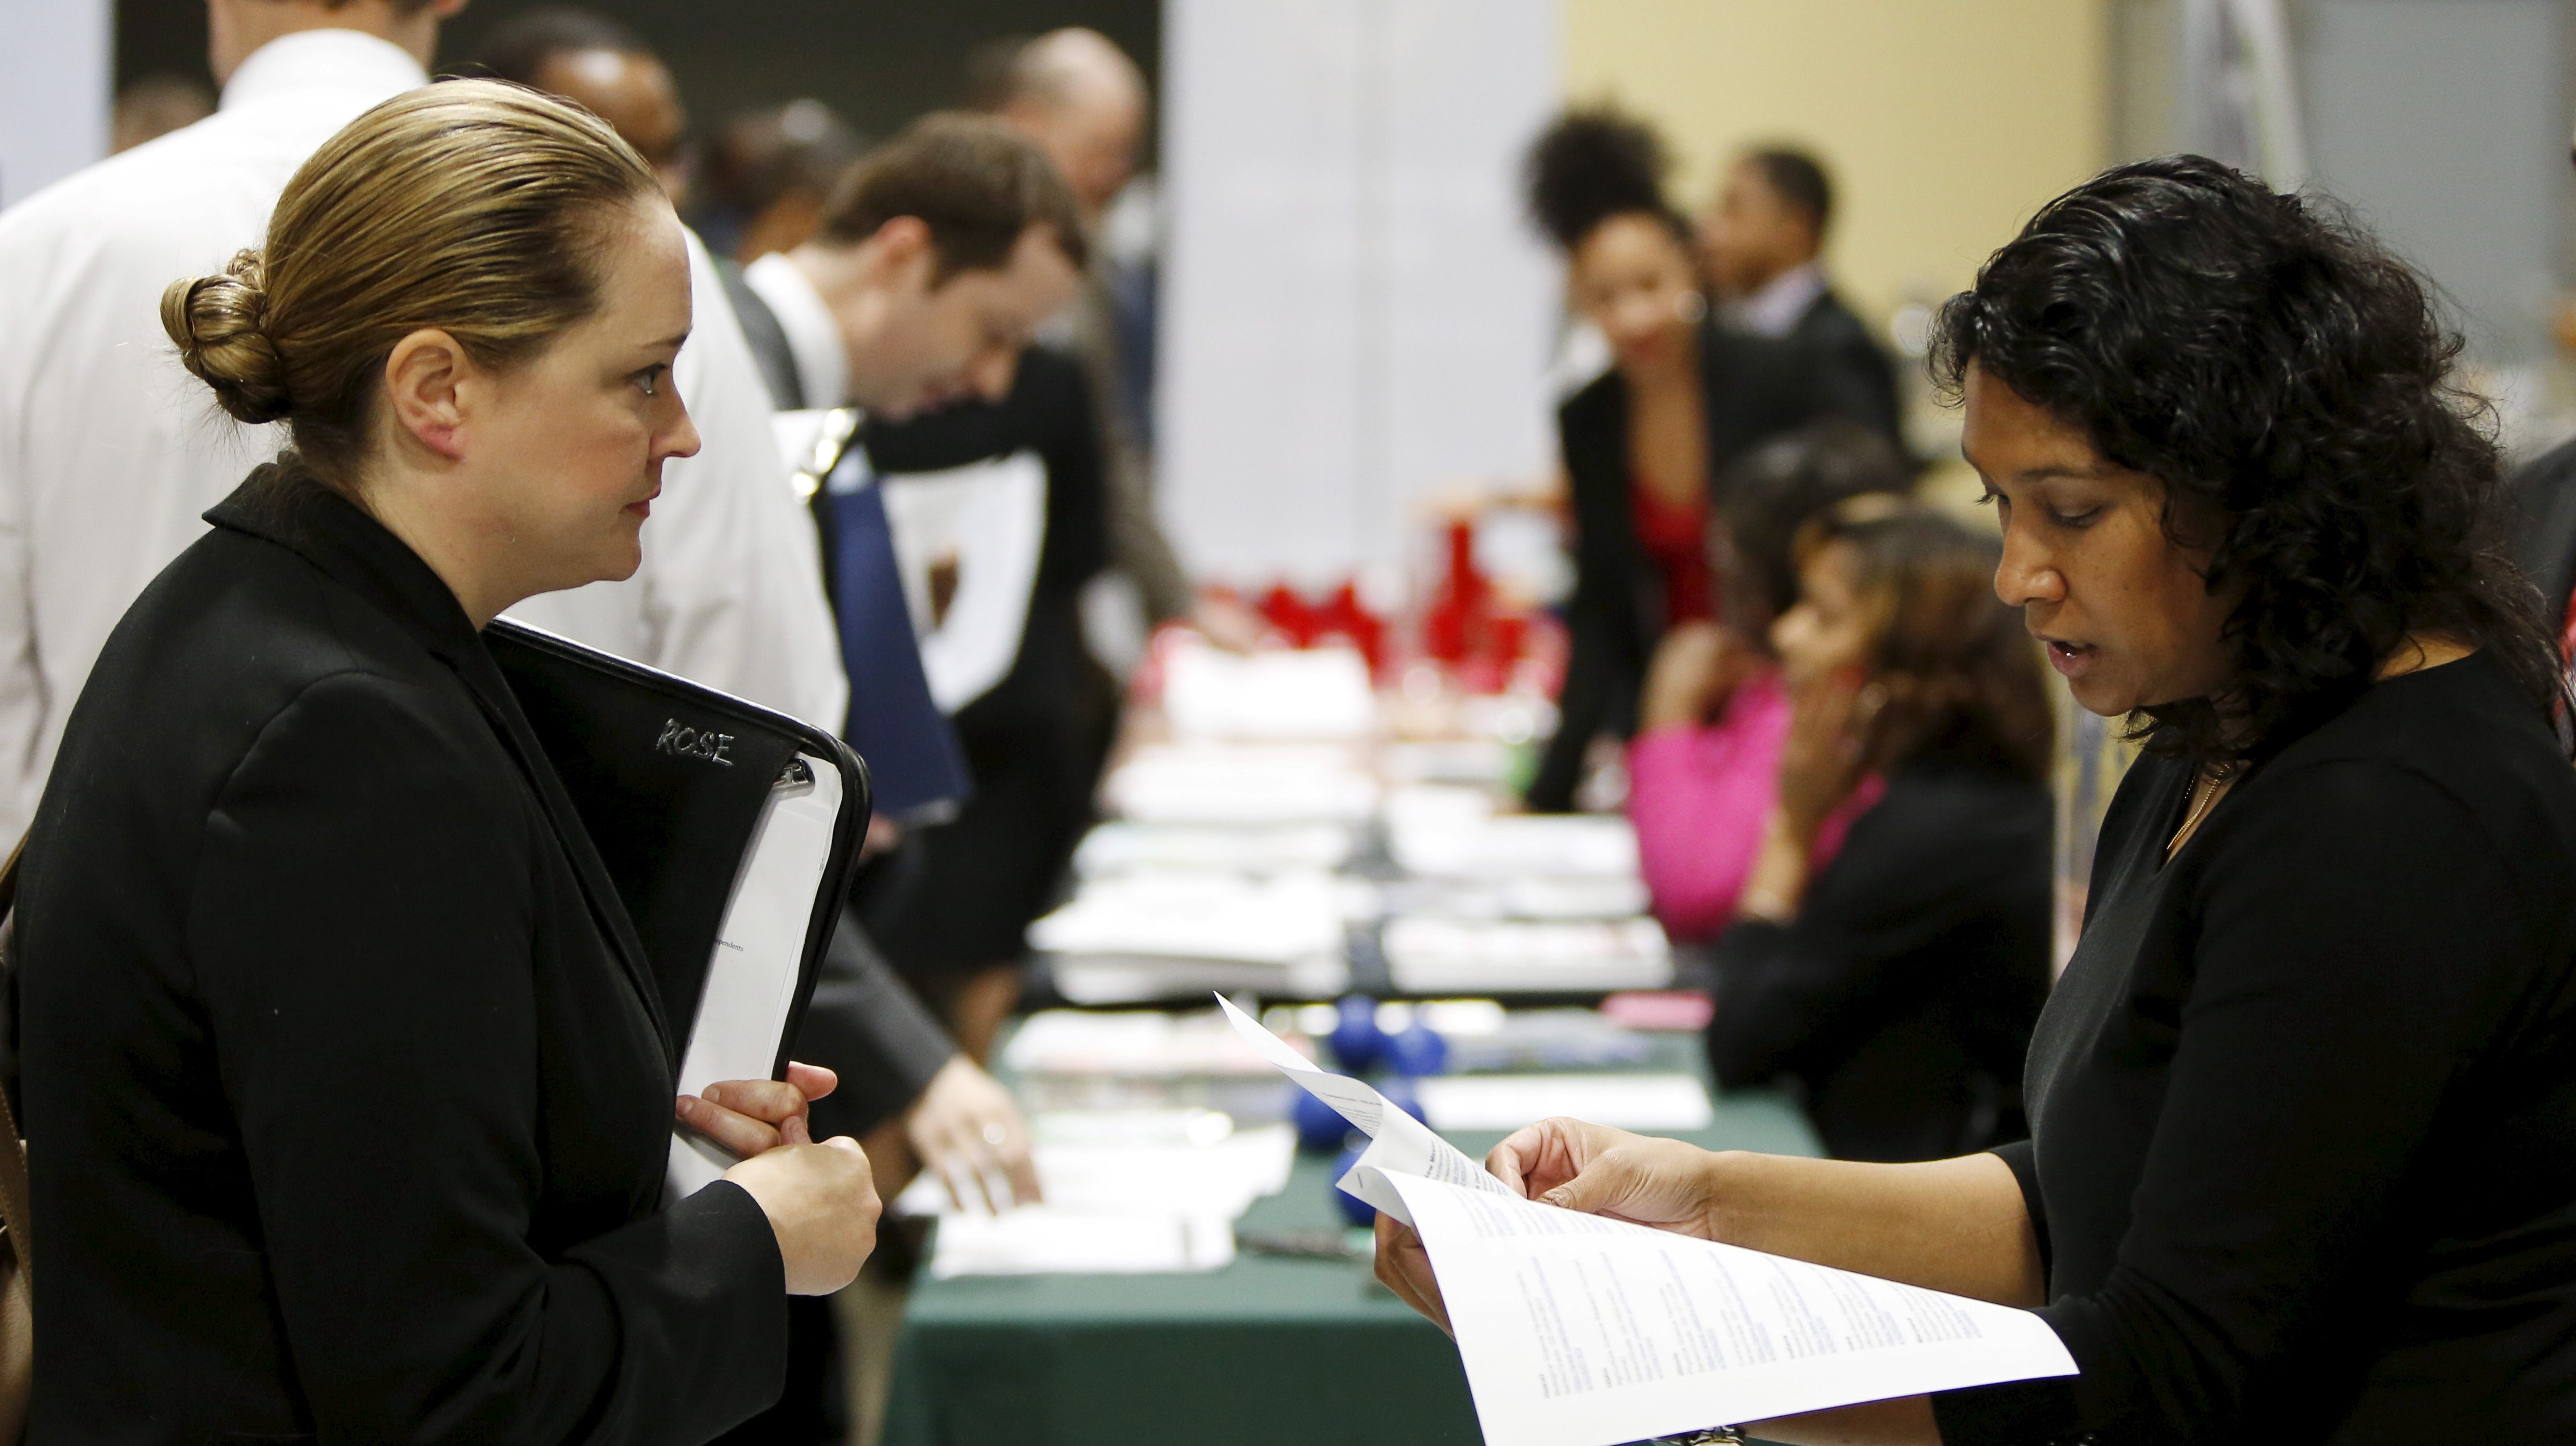 """Moushumi Paul (R) of the USDA interviews job applicant Sherry Rose (L) at a U.S. Chamber of Commerce Foundation """"Hiring Our Heroes"""" military job fair in Washington January 8, 2016."""